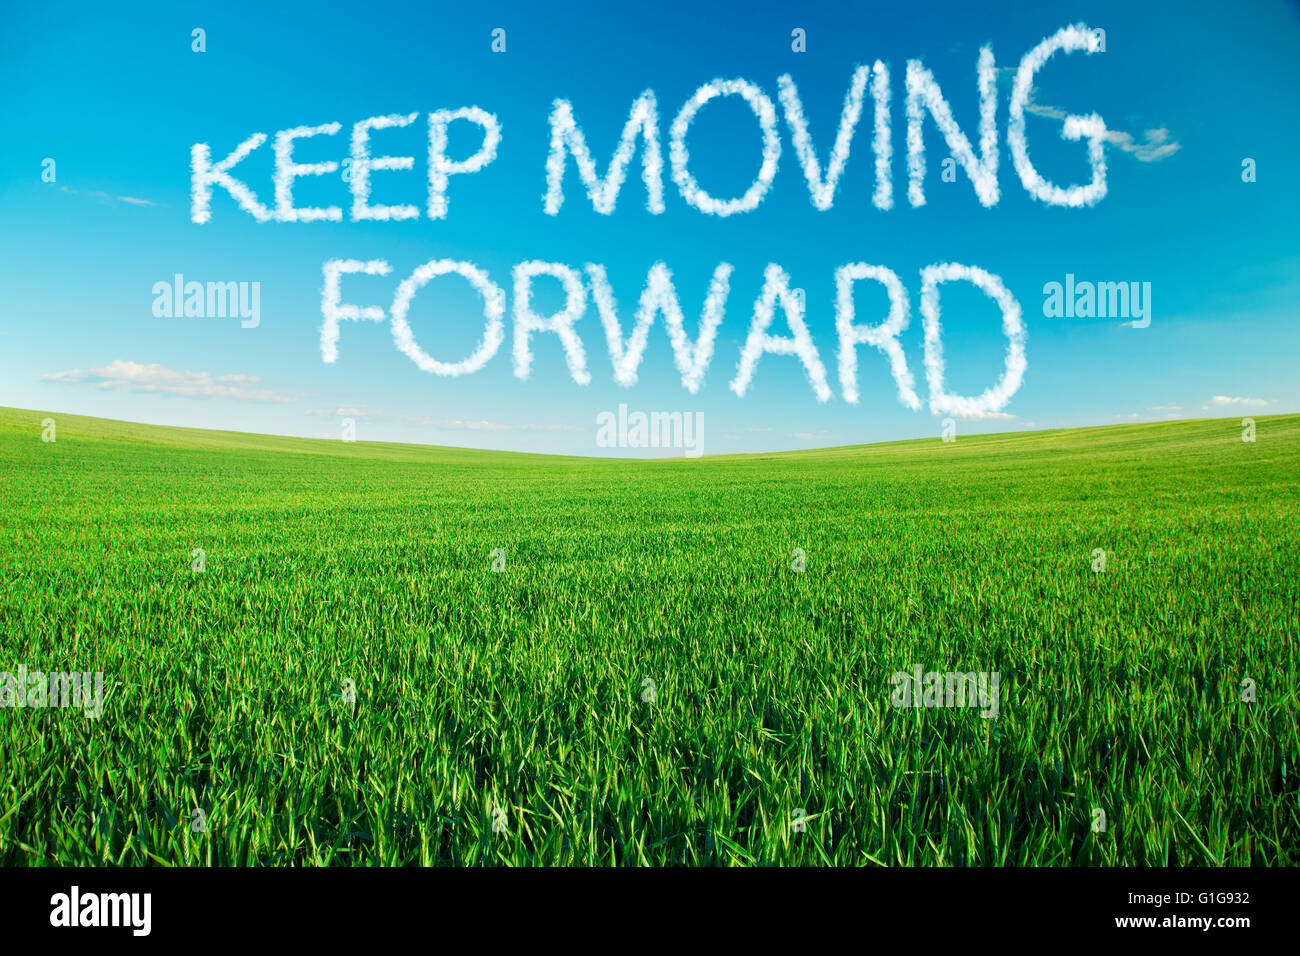 Keep moving forward written in clouds over green field - Stock Image